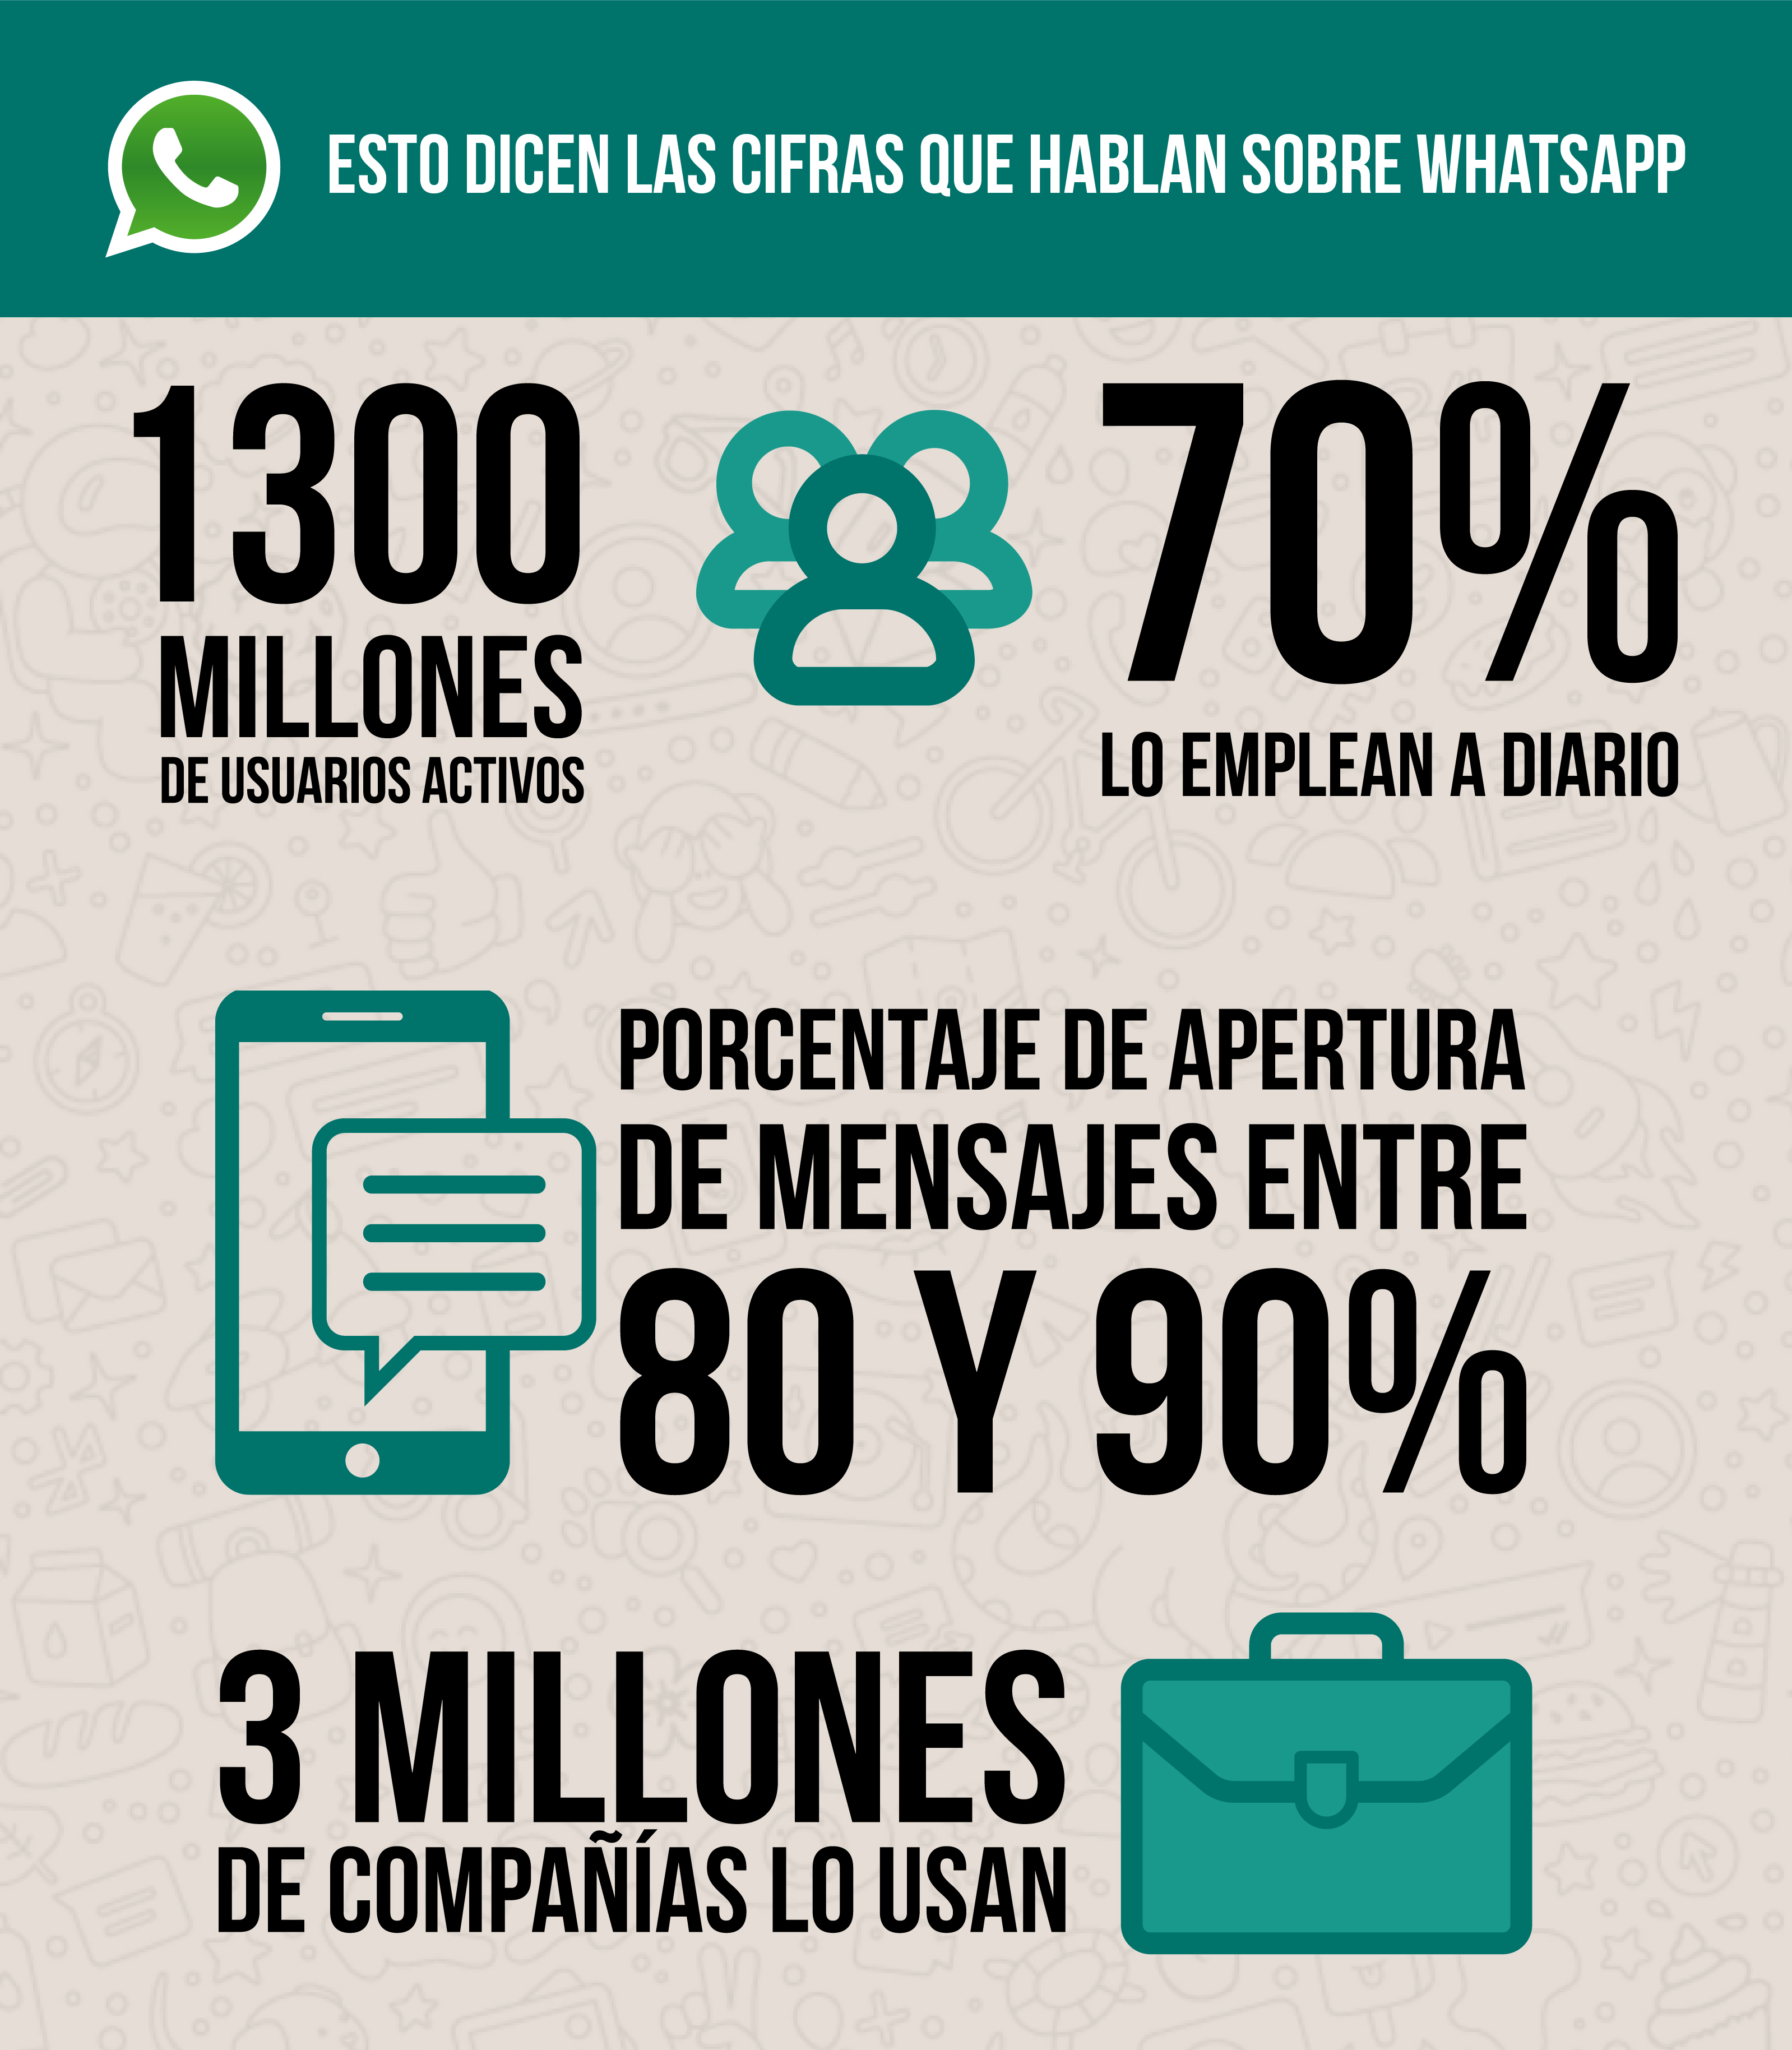 WHATSAPP BUSINESS EN CIFRAS - INFOGRAFIA